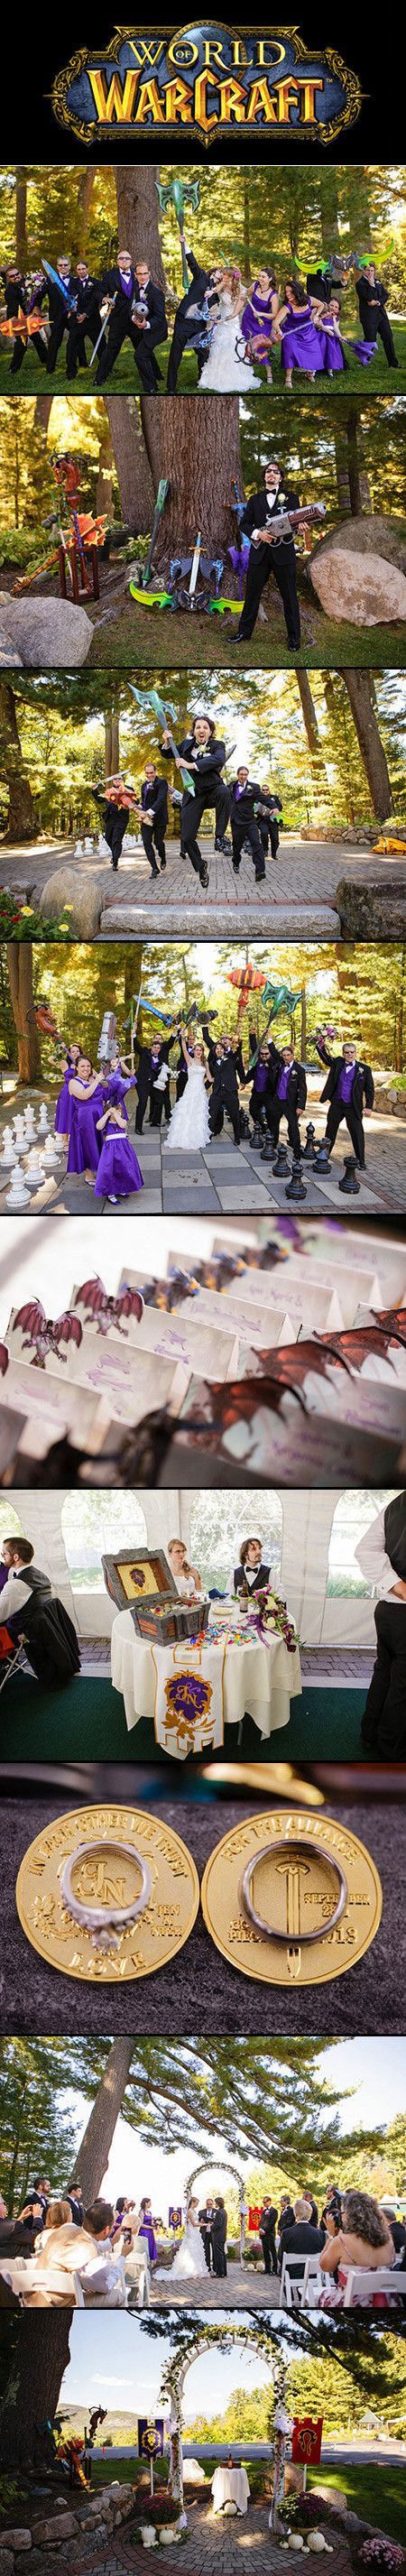 Jen and Nick didn't meet online, but they've developed their relationship through playing World of Warcraft together. So as their relationship grew, they finally decided to build their entire wedding—a real one, not one in Stormwind's Cathedral Square—around WoW.